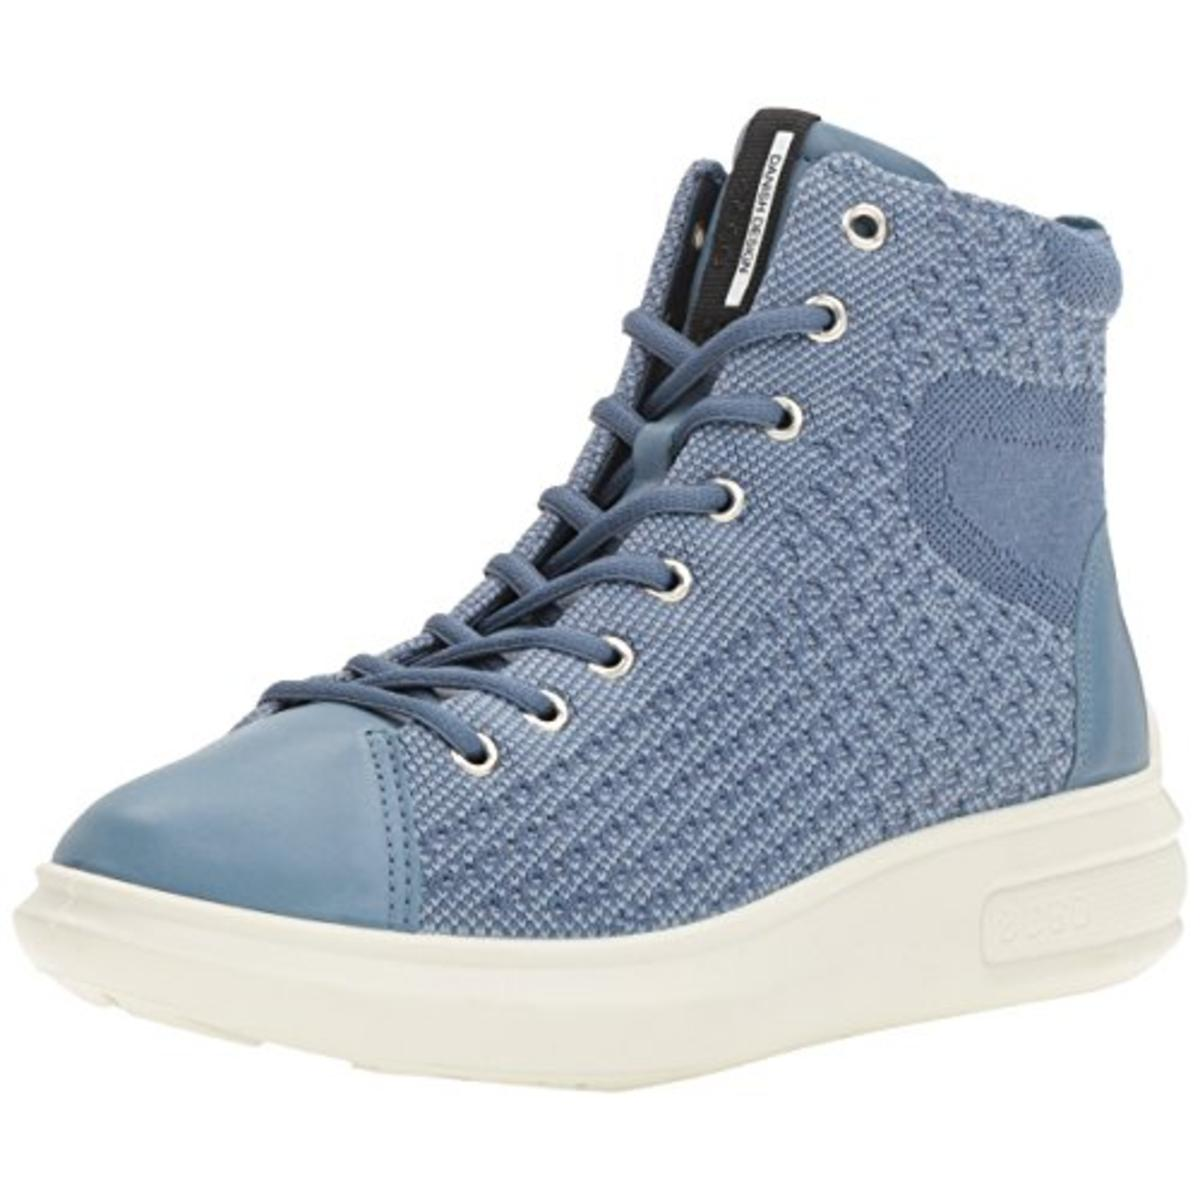 ECCO Womens High Top Leather Fashion Sneakers by Ecco